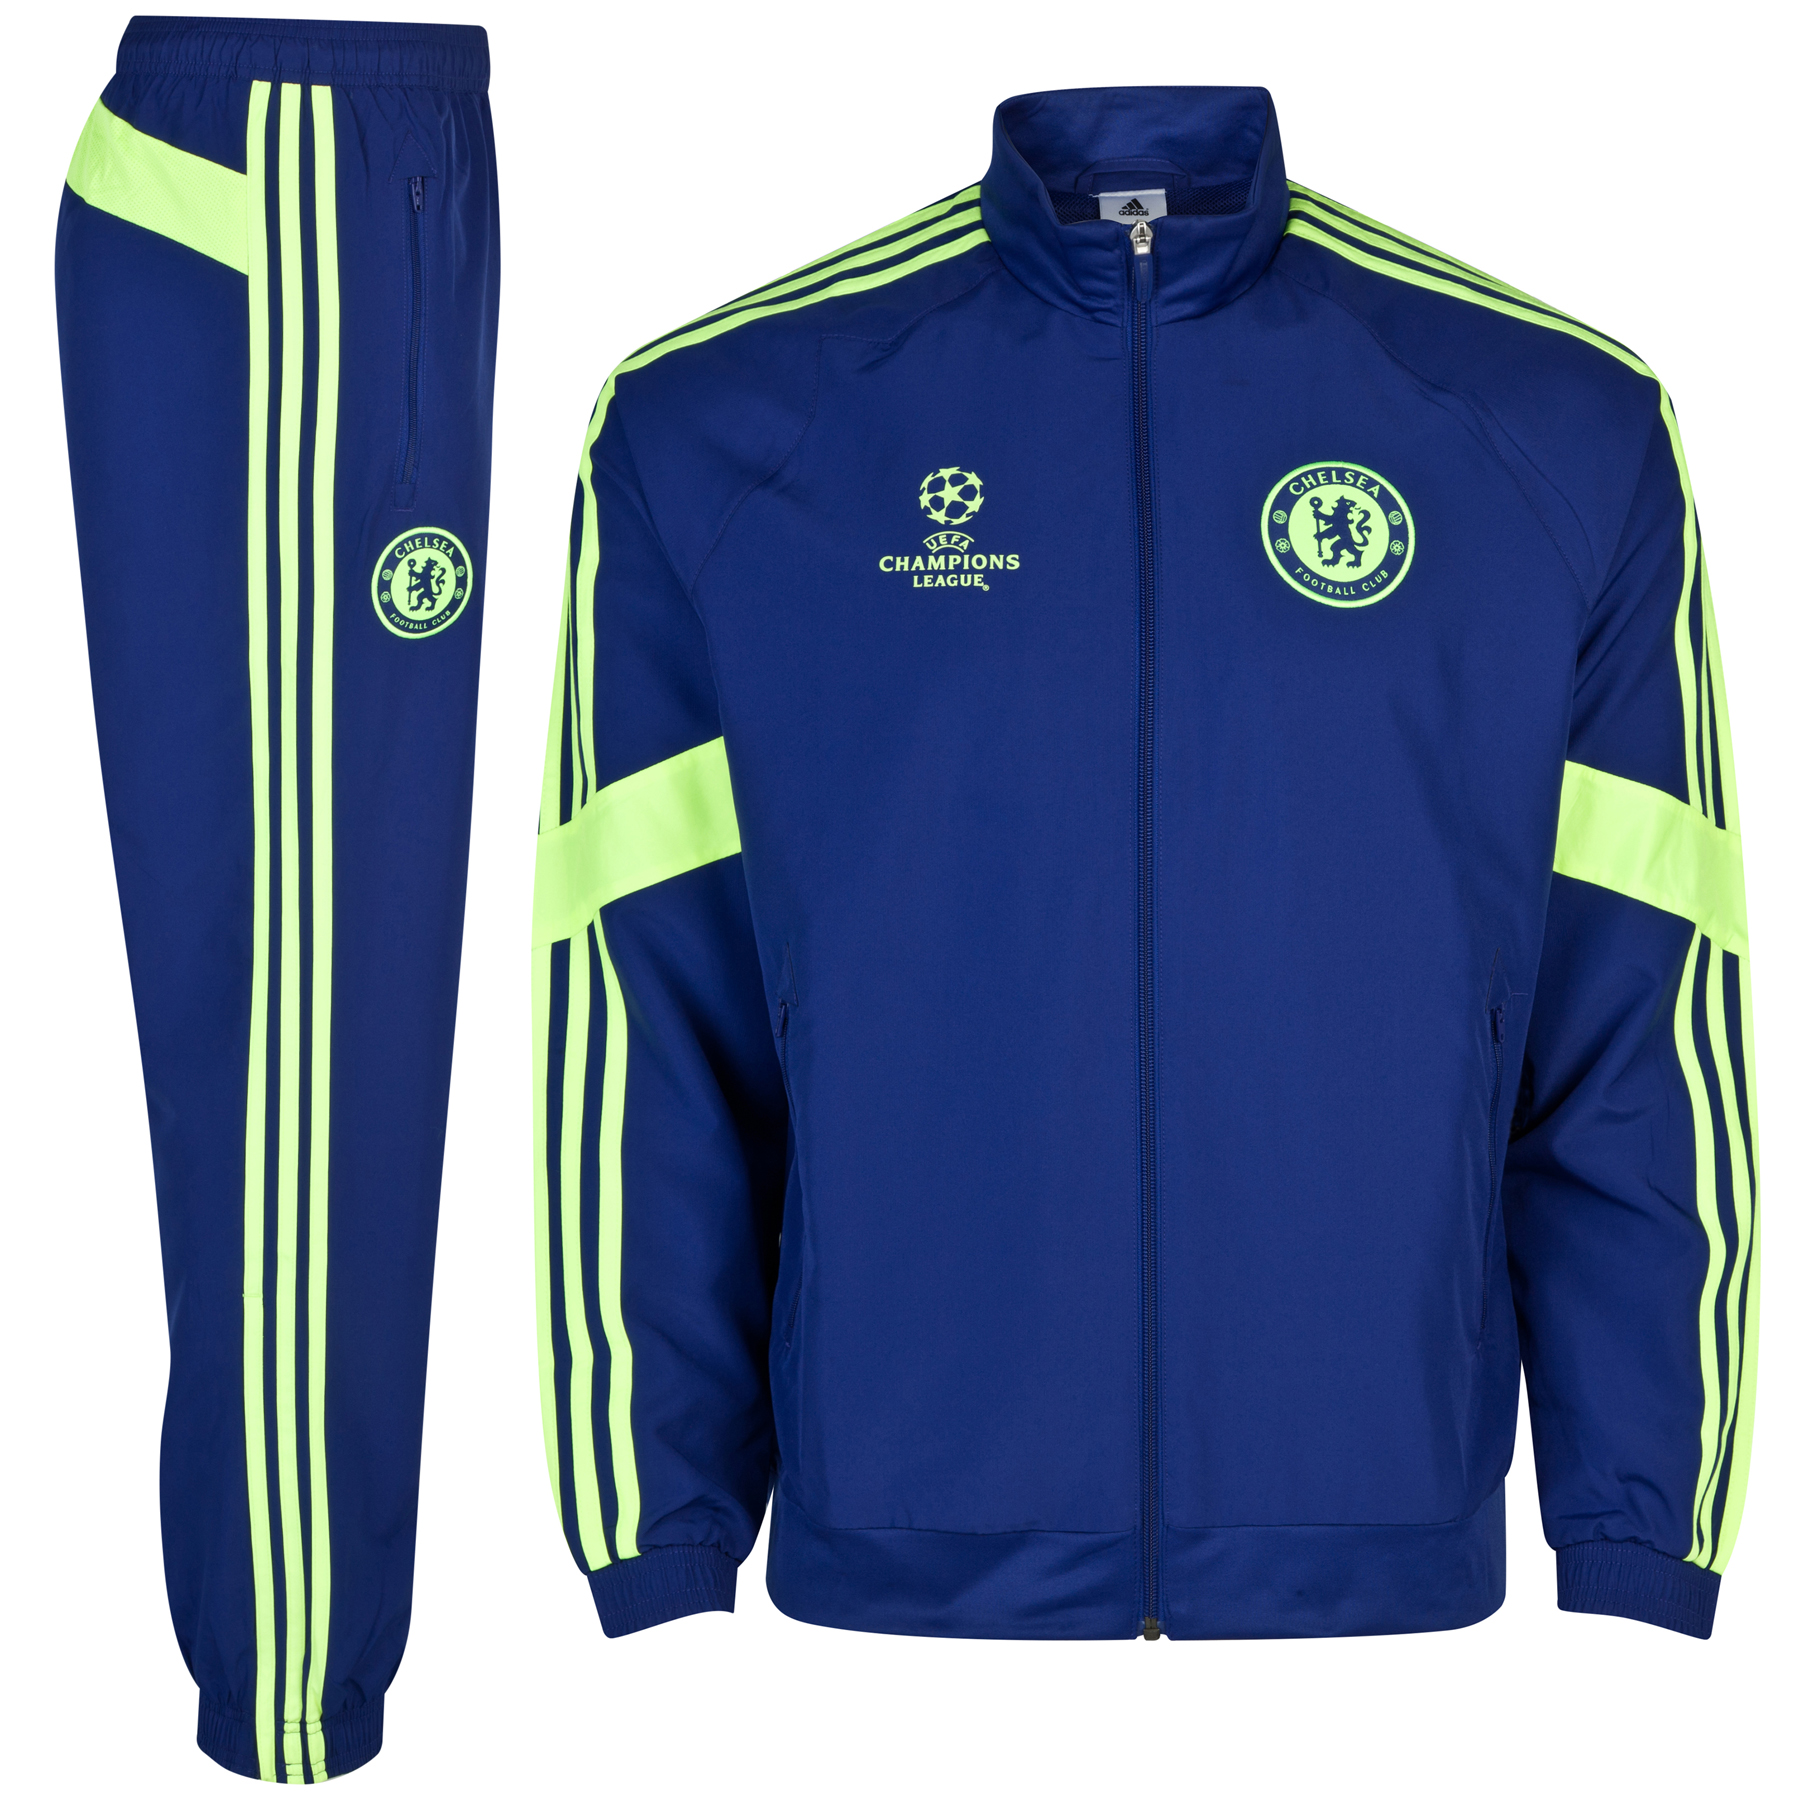 Chelsea UCL Training Presentation Suit The Chelsea UCL Training Presentation Suit is the perfect choice for training and leisure activities. With a woven team crest, you can wear this suit with team pride. The elasticated cuffs and ankles provide a perfect fit whilst the embroidered adidas logo and adidas stripes complete the sporty look. Buy this Chelsea presentation suit for a great game every time.   Benefits of this Chelsea UCL presentation suit •Woven team crest •Embroidered adidas logo